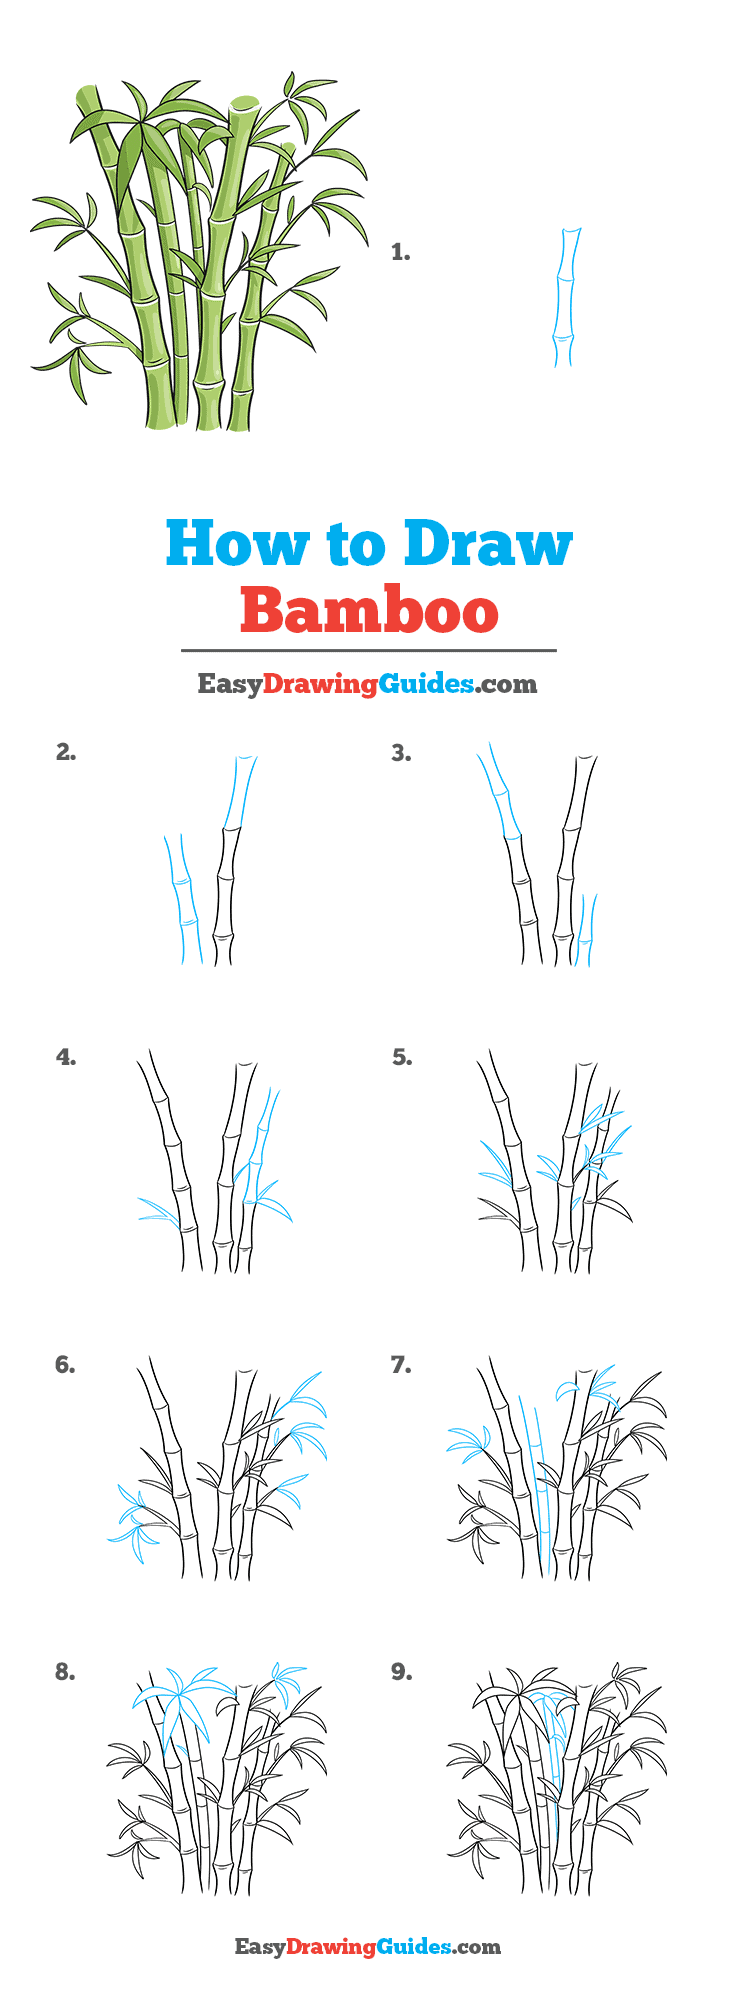 How to Draw Bamboo